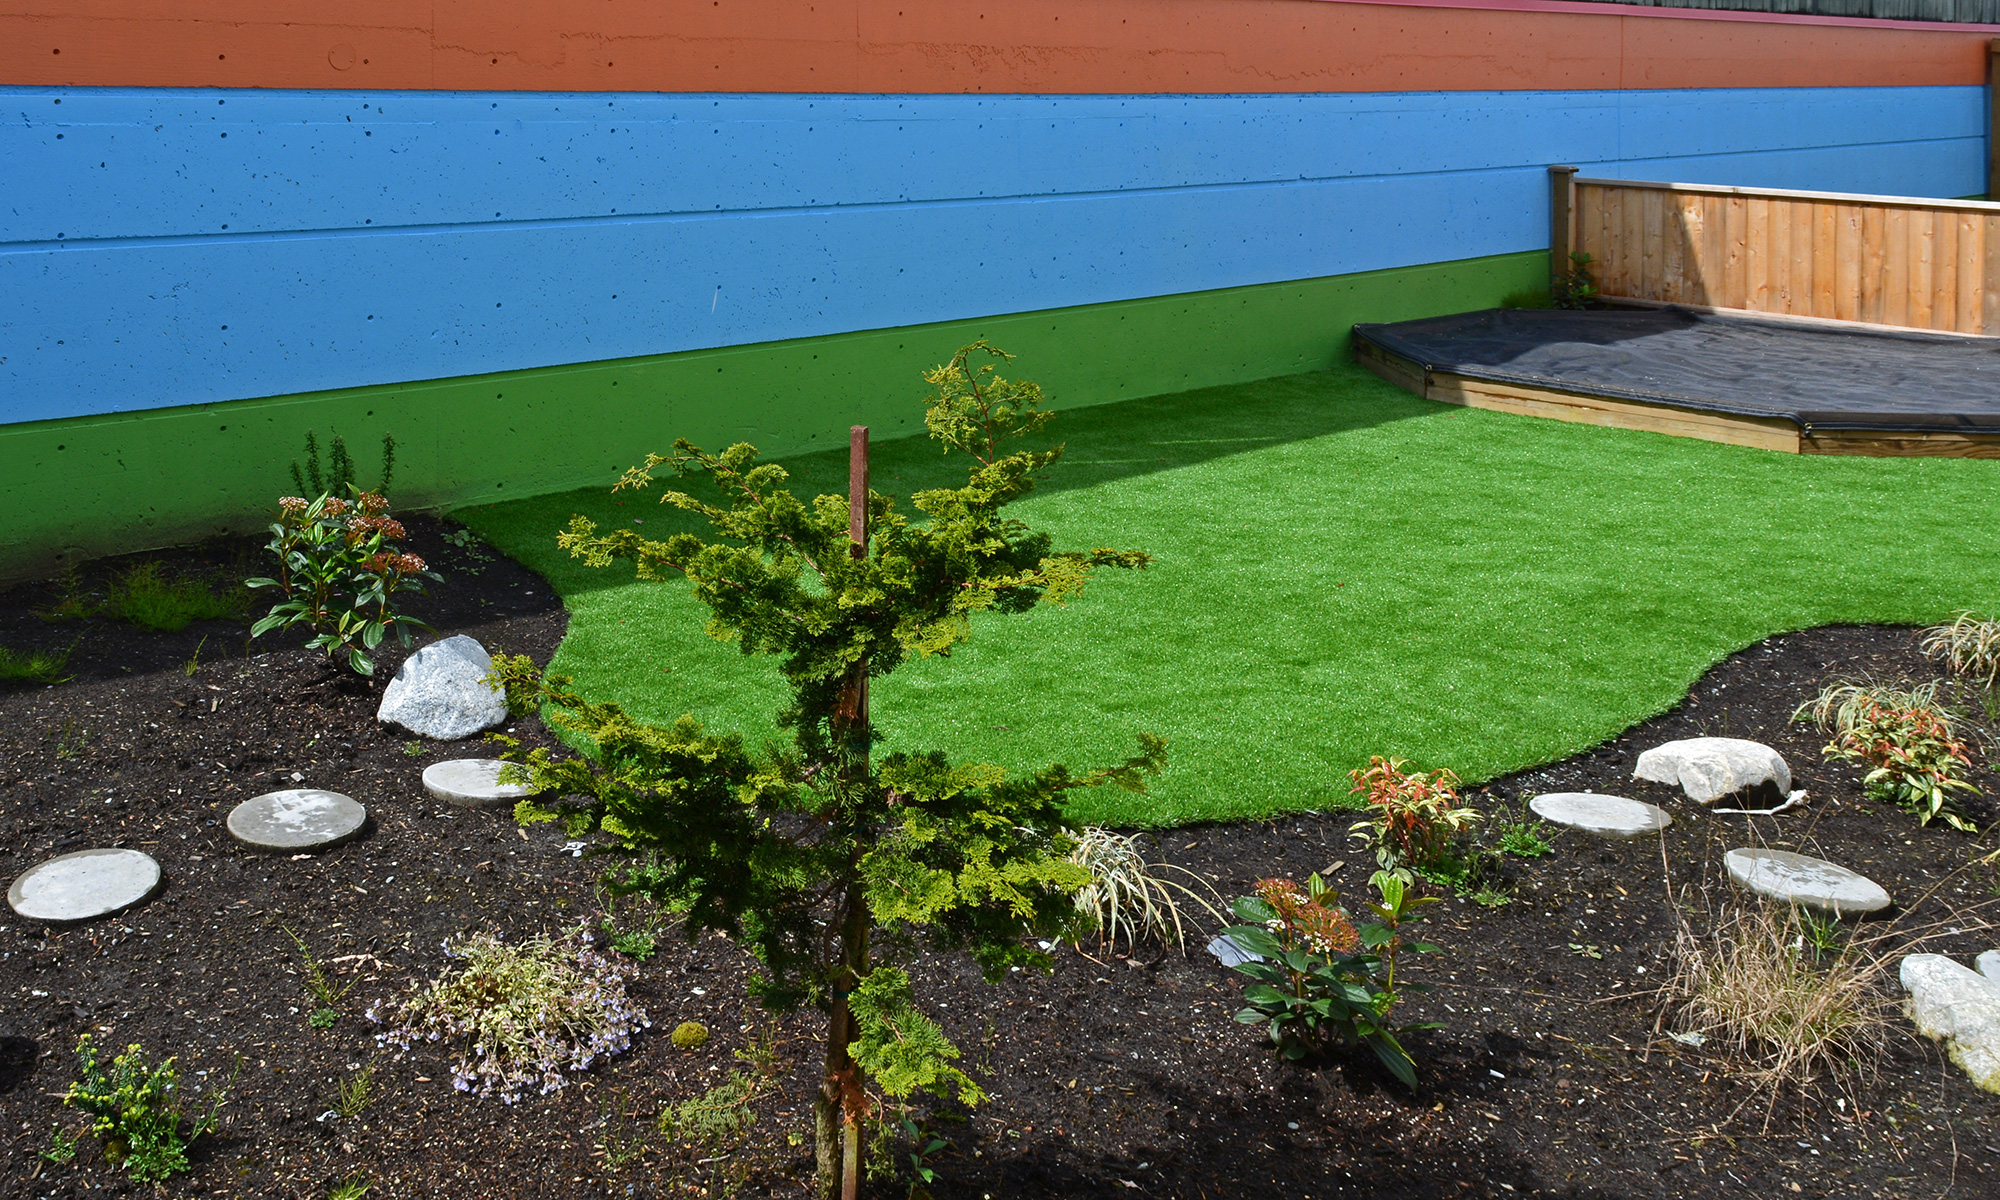 Turf lawn for a childcare facility